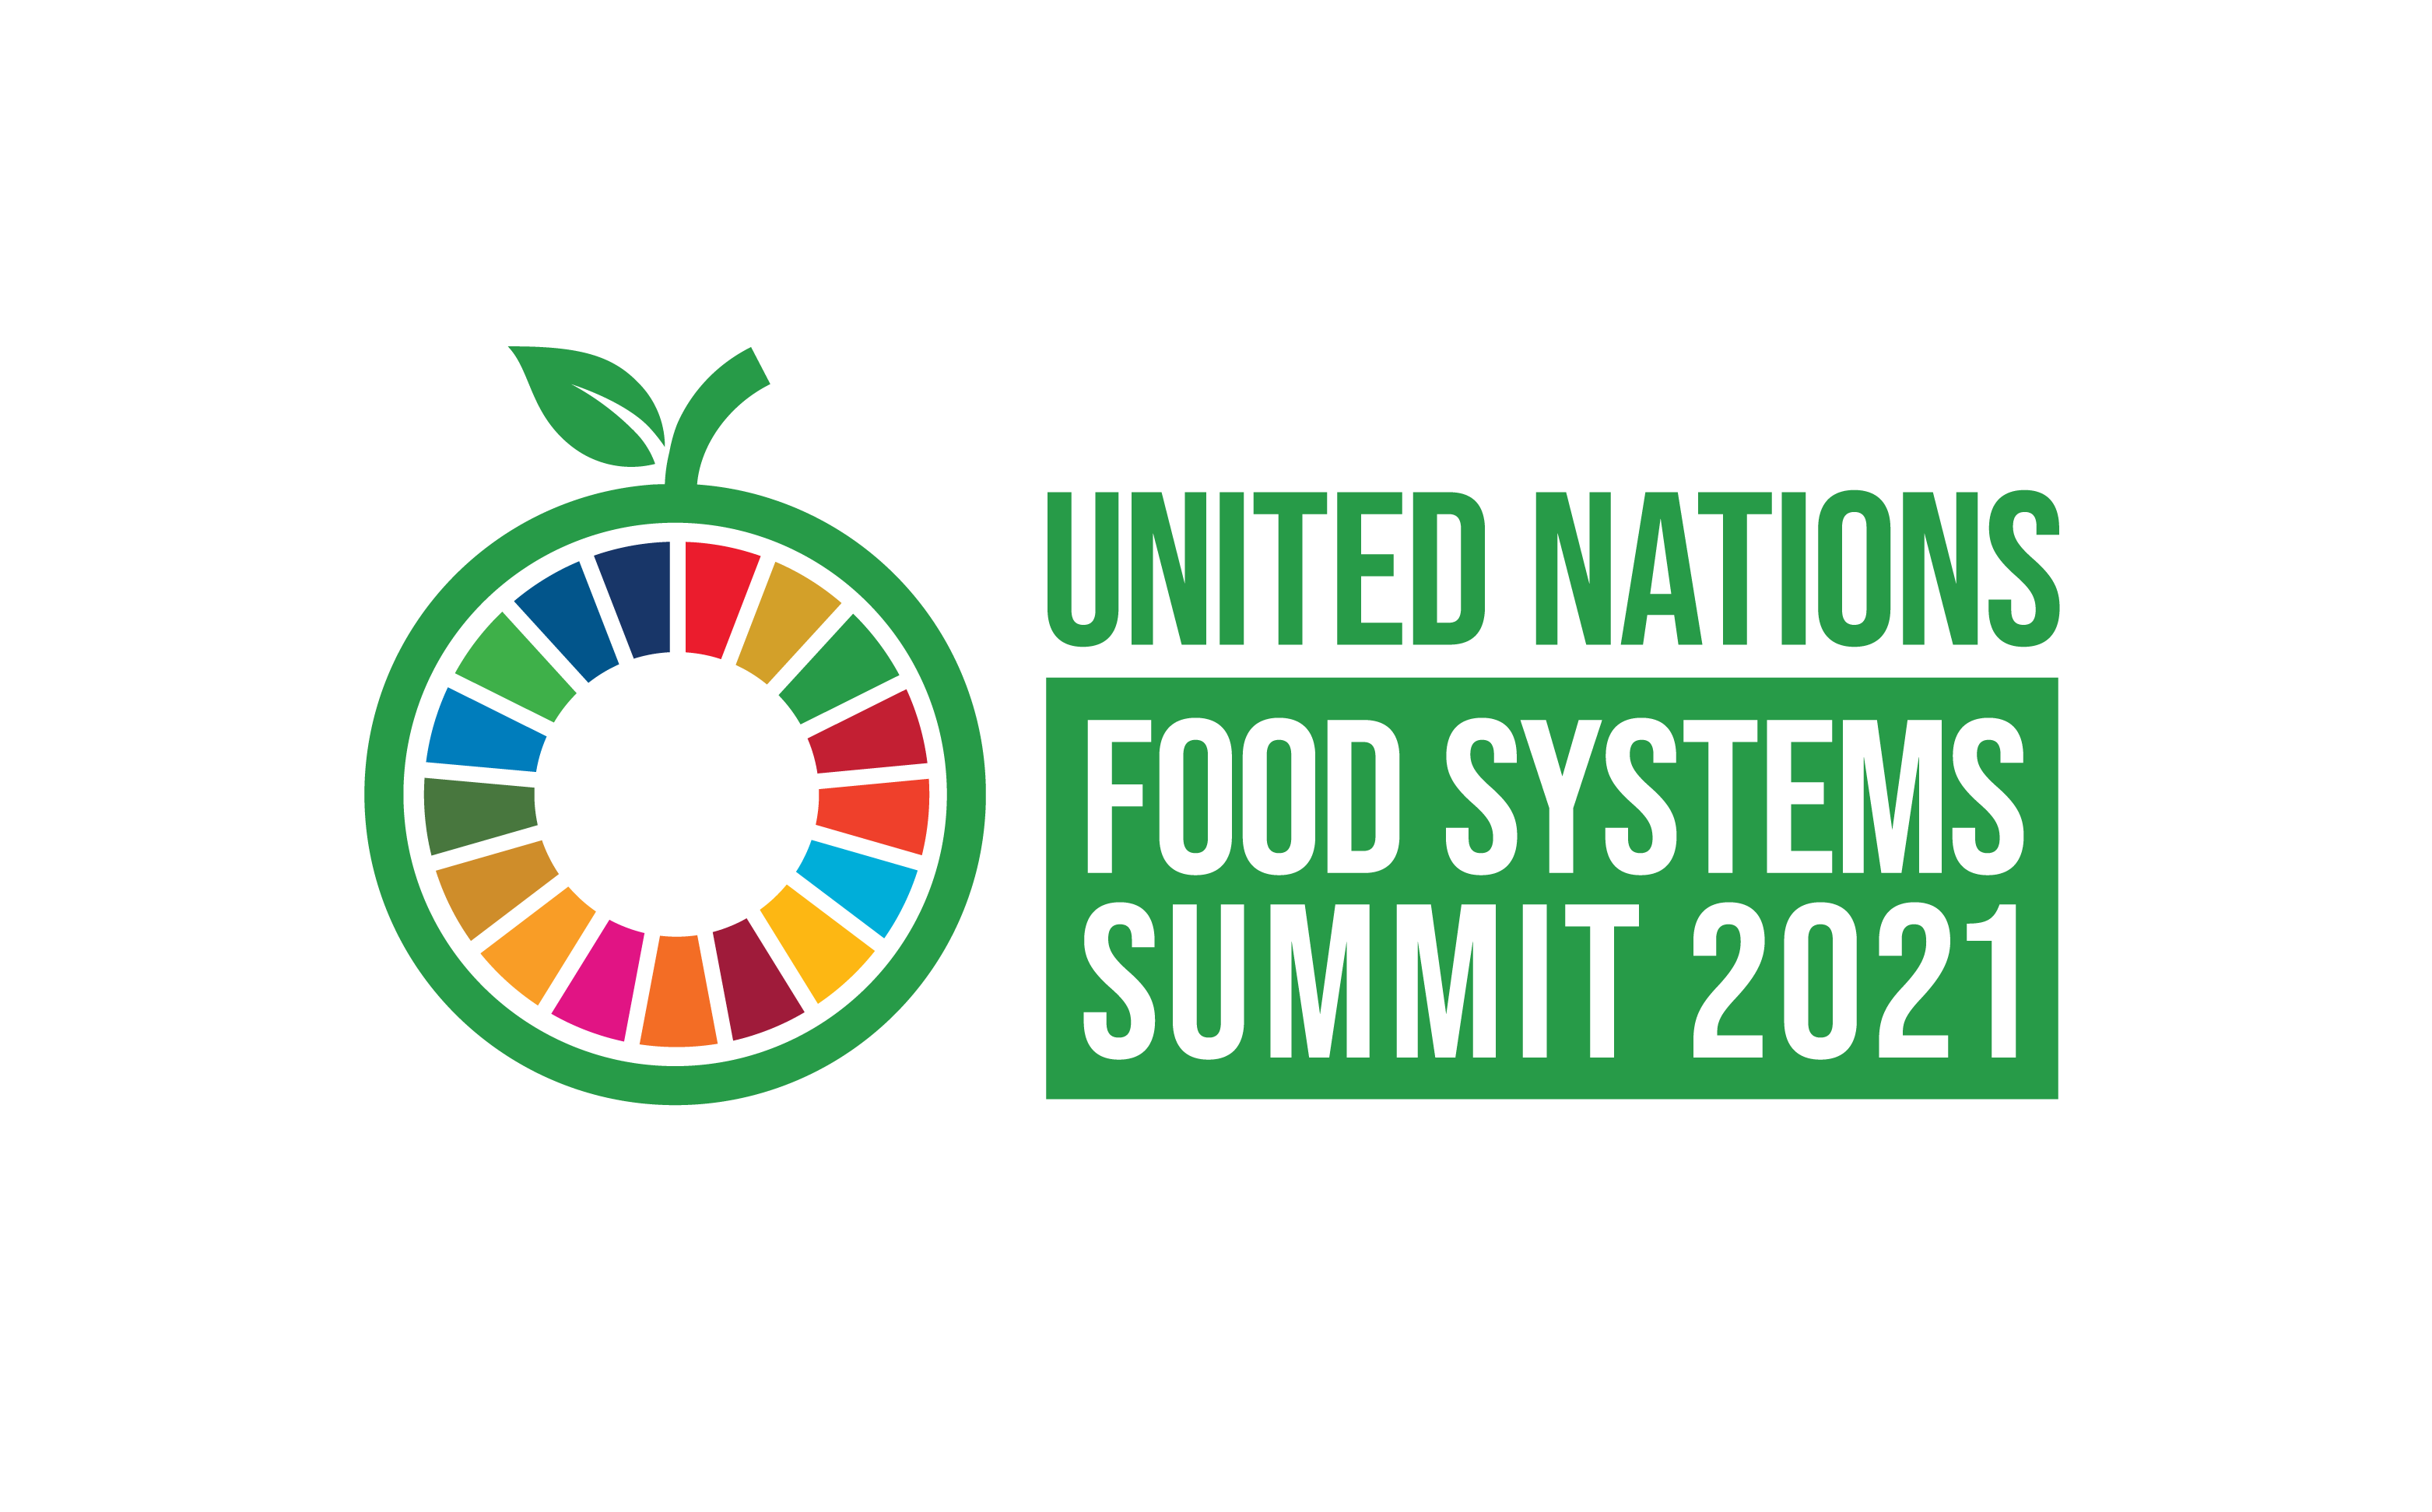 United Nations Food Systems Summit 2021